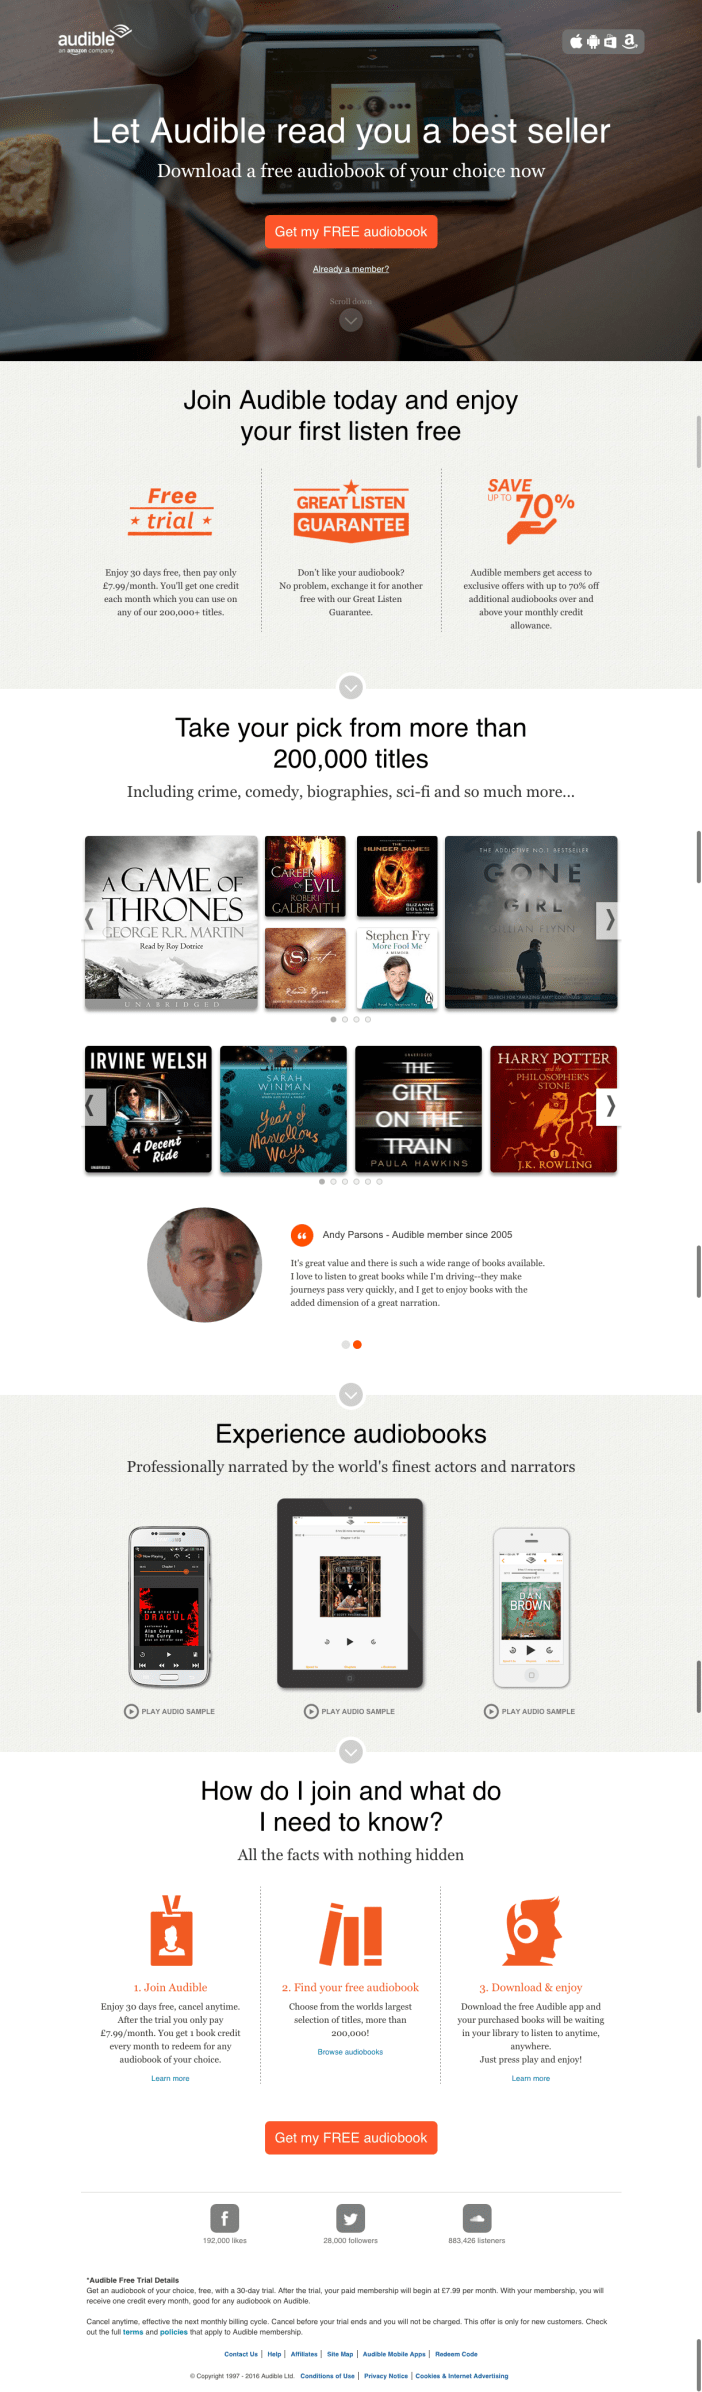 Audible.co.uk - Landing Page - Gamobu